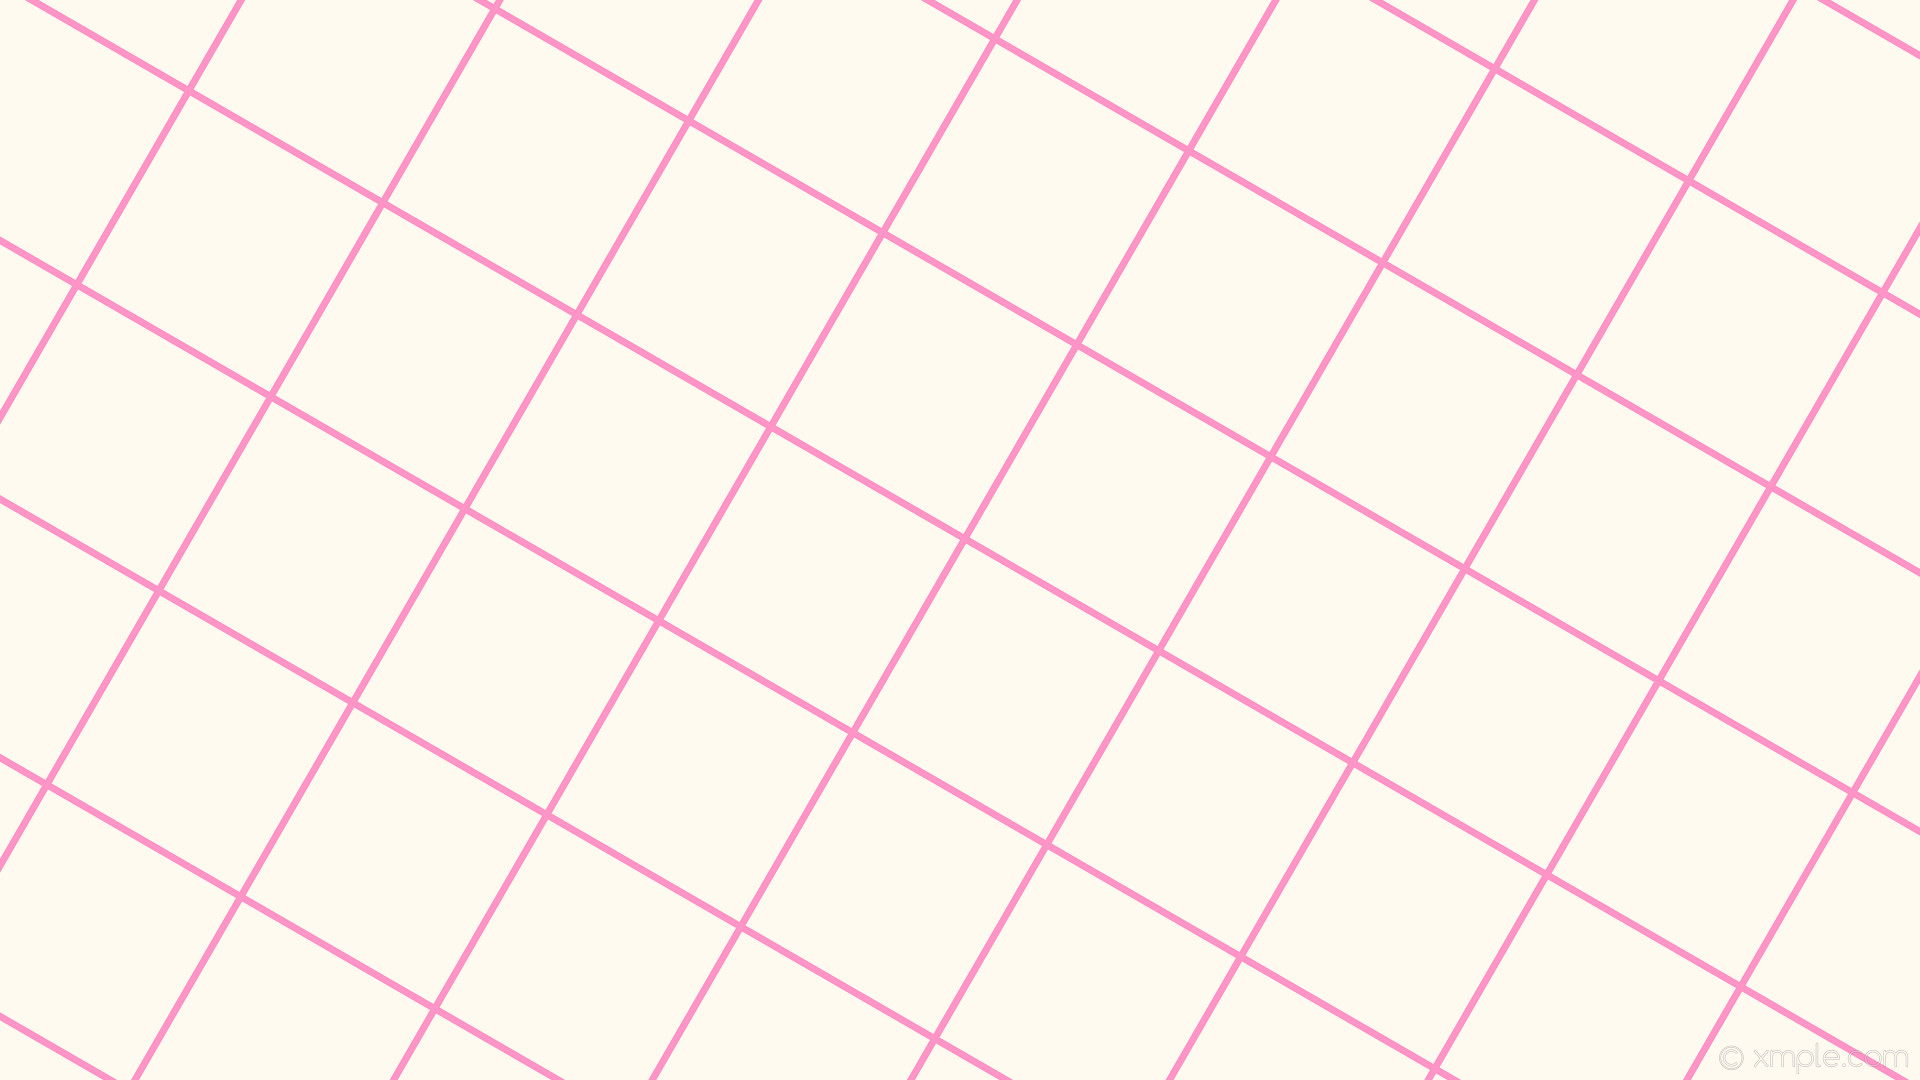 1920x1080 wallpaper pink graph paper white grid floral white hot pink #fffaf0 #ff69b4  60°